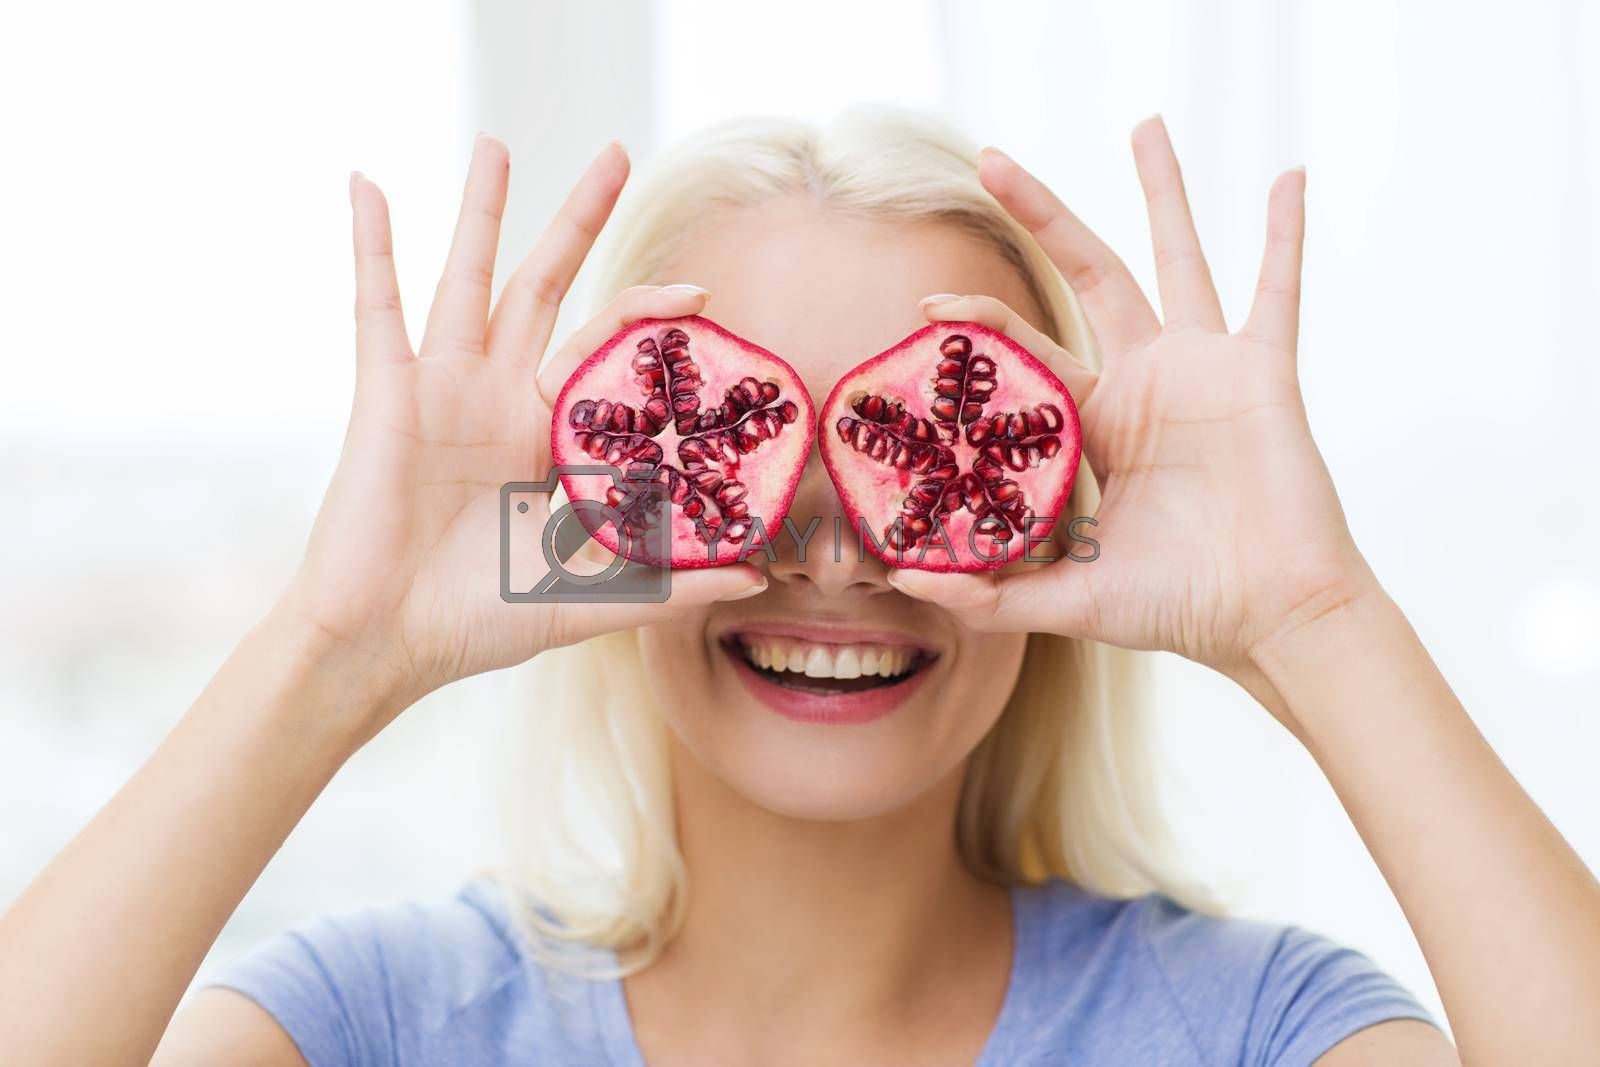 healthy eating, organic food, fruit diet, comic and people concept - happy woman having fun and covering her eyes with pomegranate